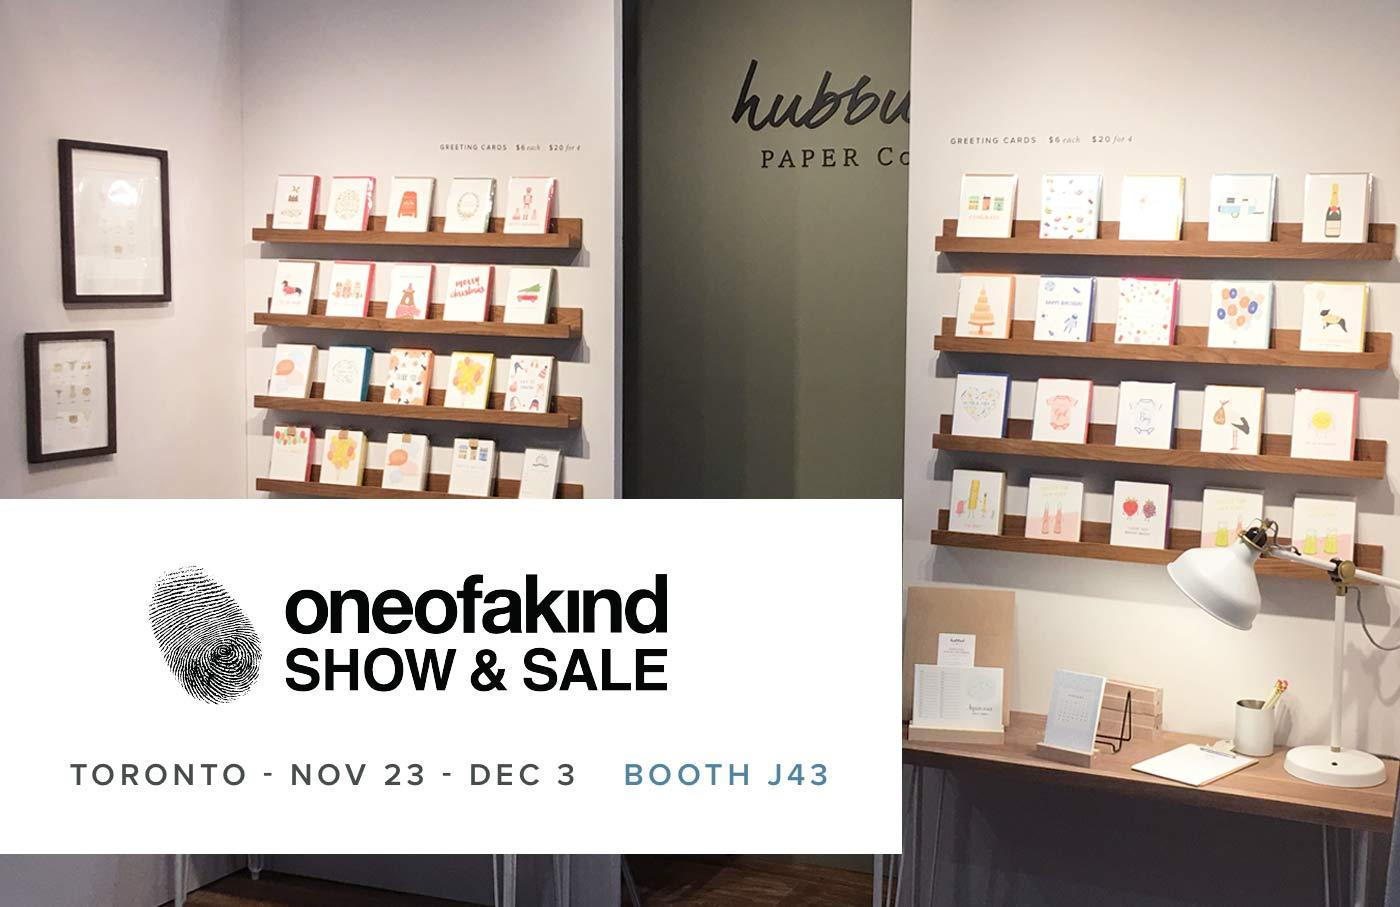 One of a Kind Show - Nov 23 to Dec 3